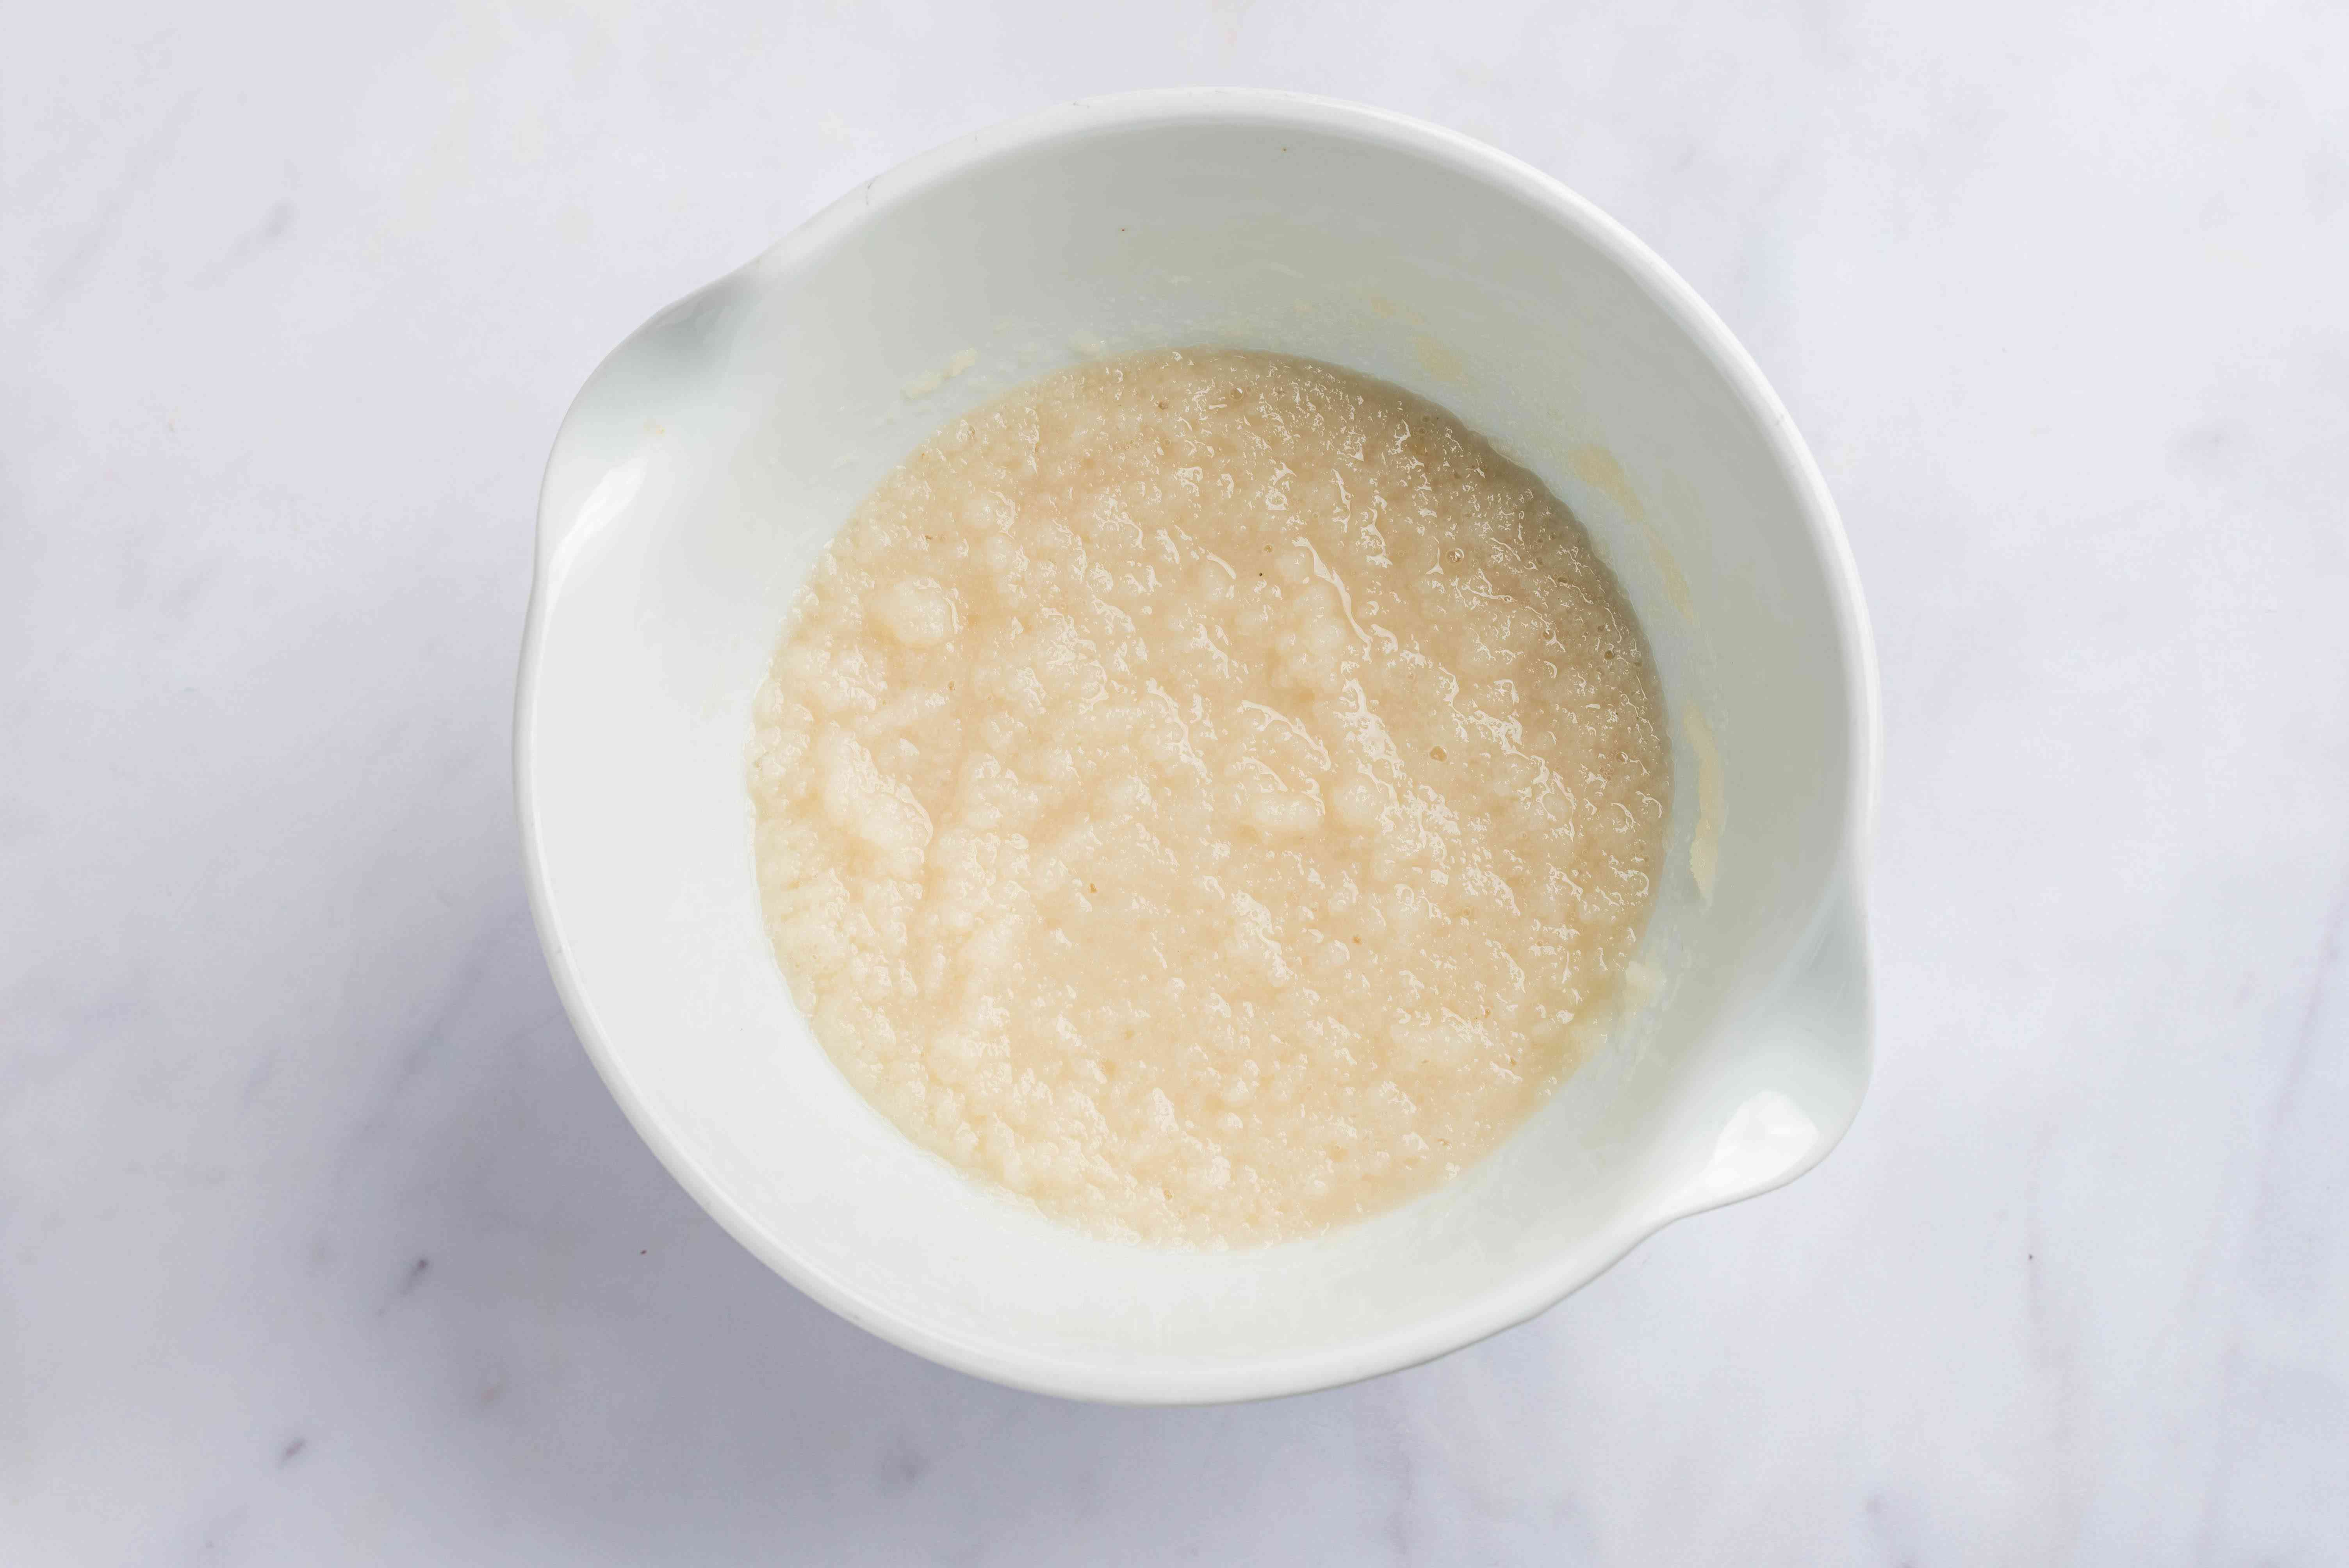 Warm water, sugar, yeast, and potato flakes are mixed together